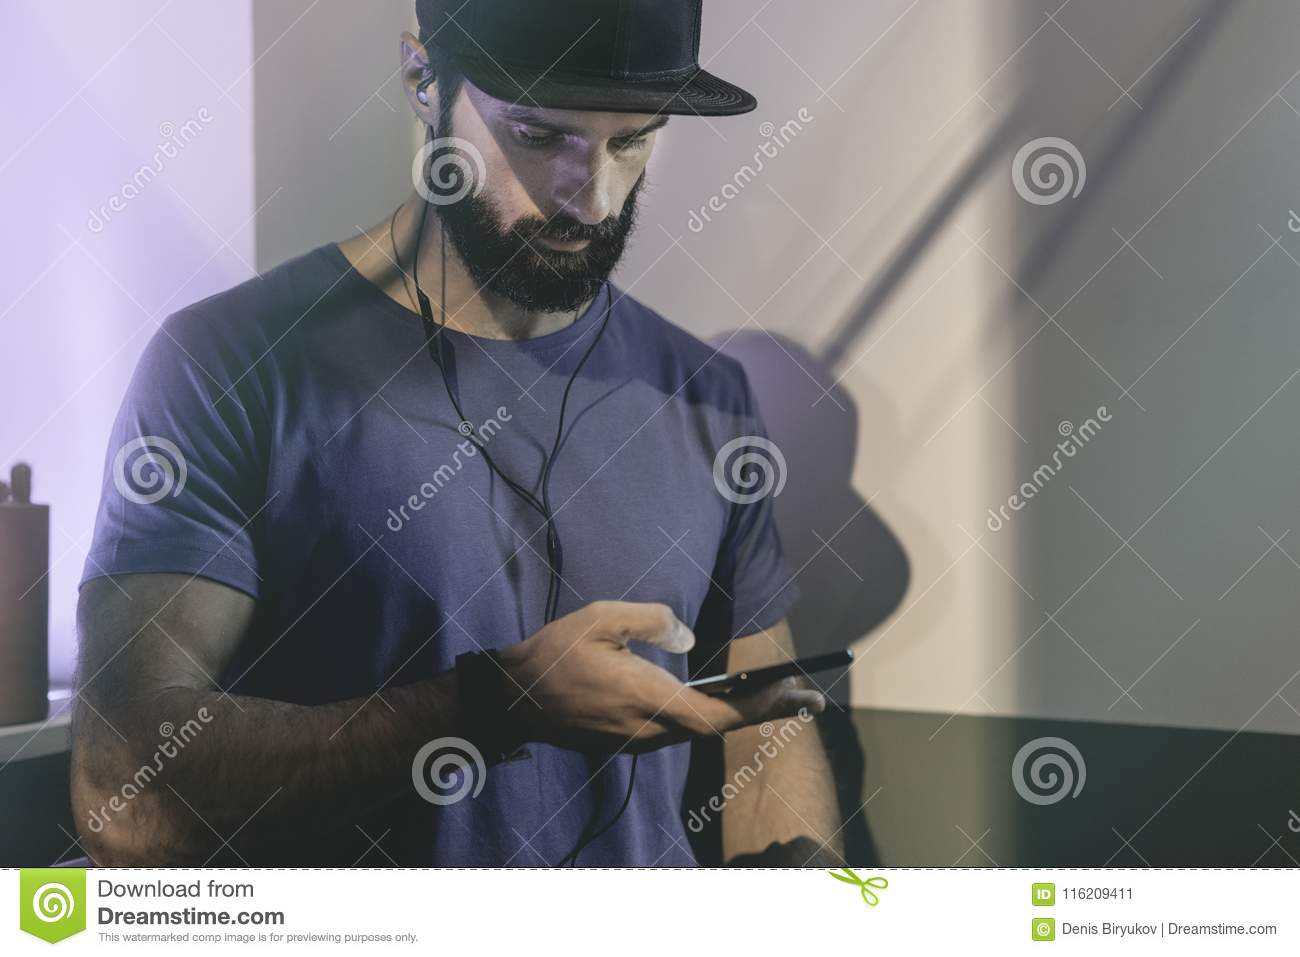 819eb32370d Bearded muscular man wearing black snapback cap standing on cafe with  headphones. Men using mobile